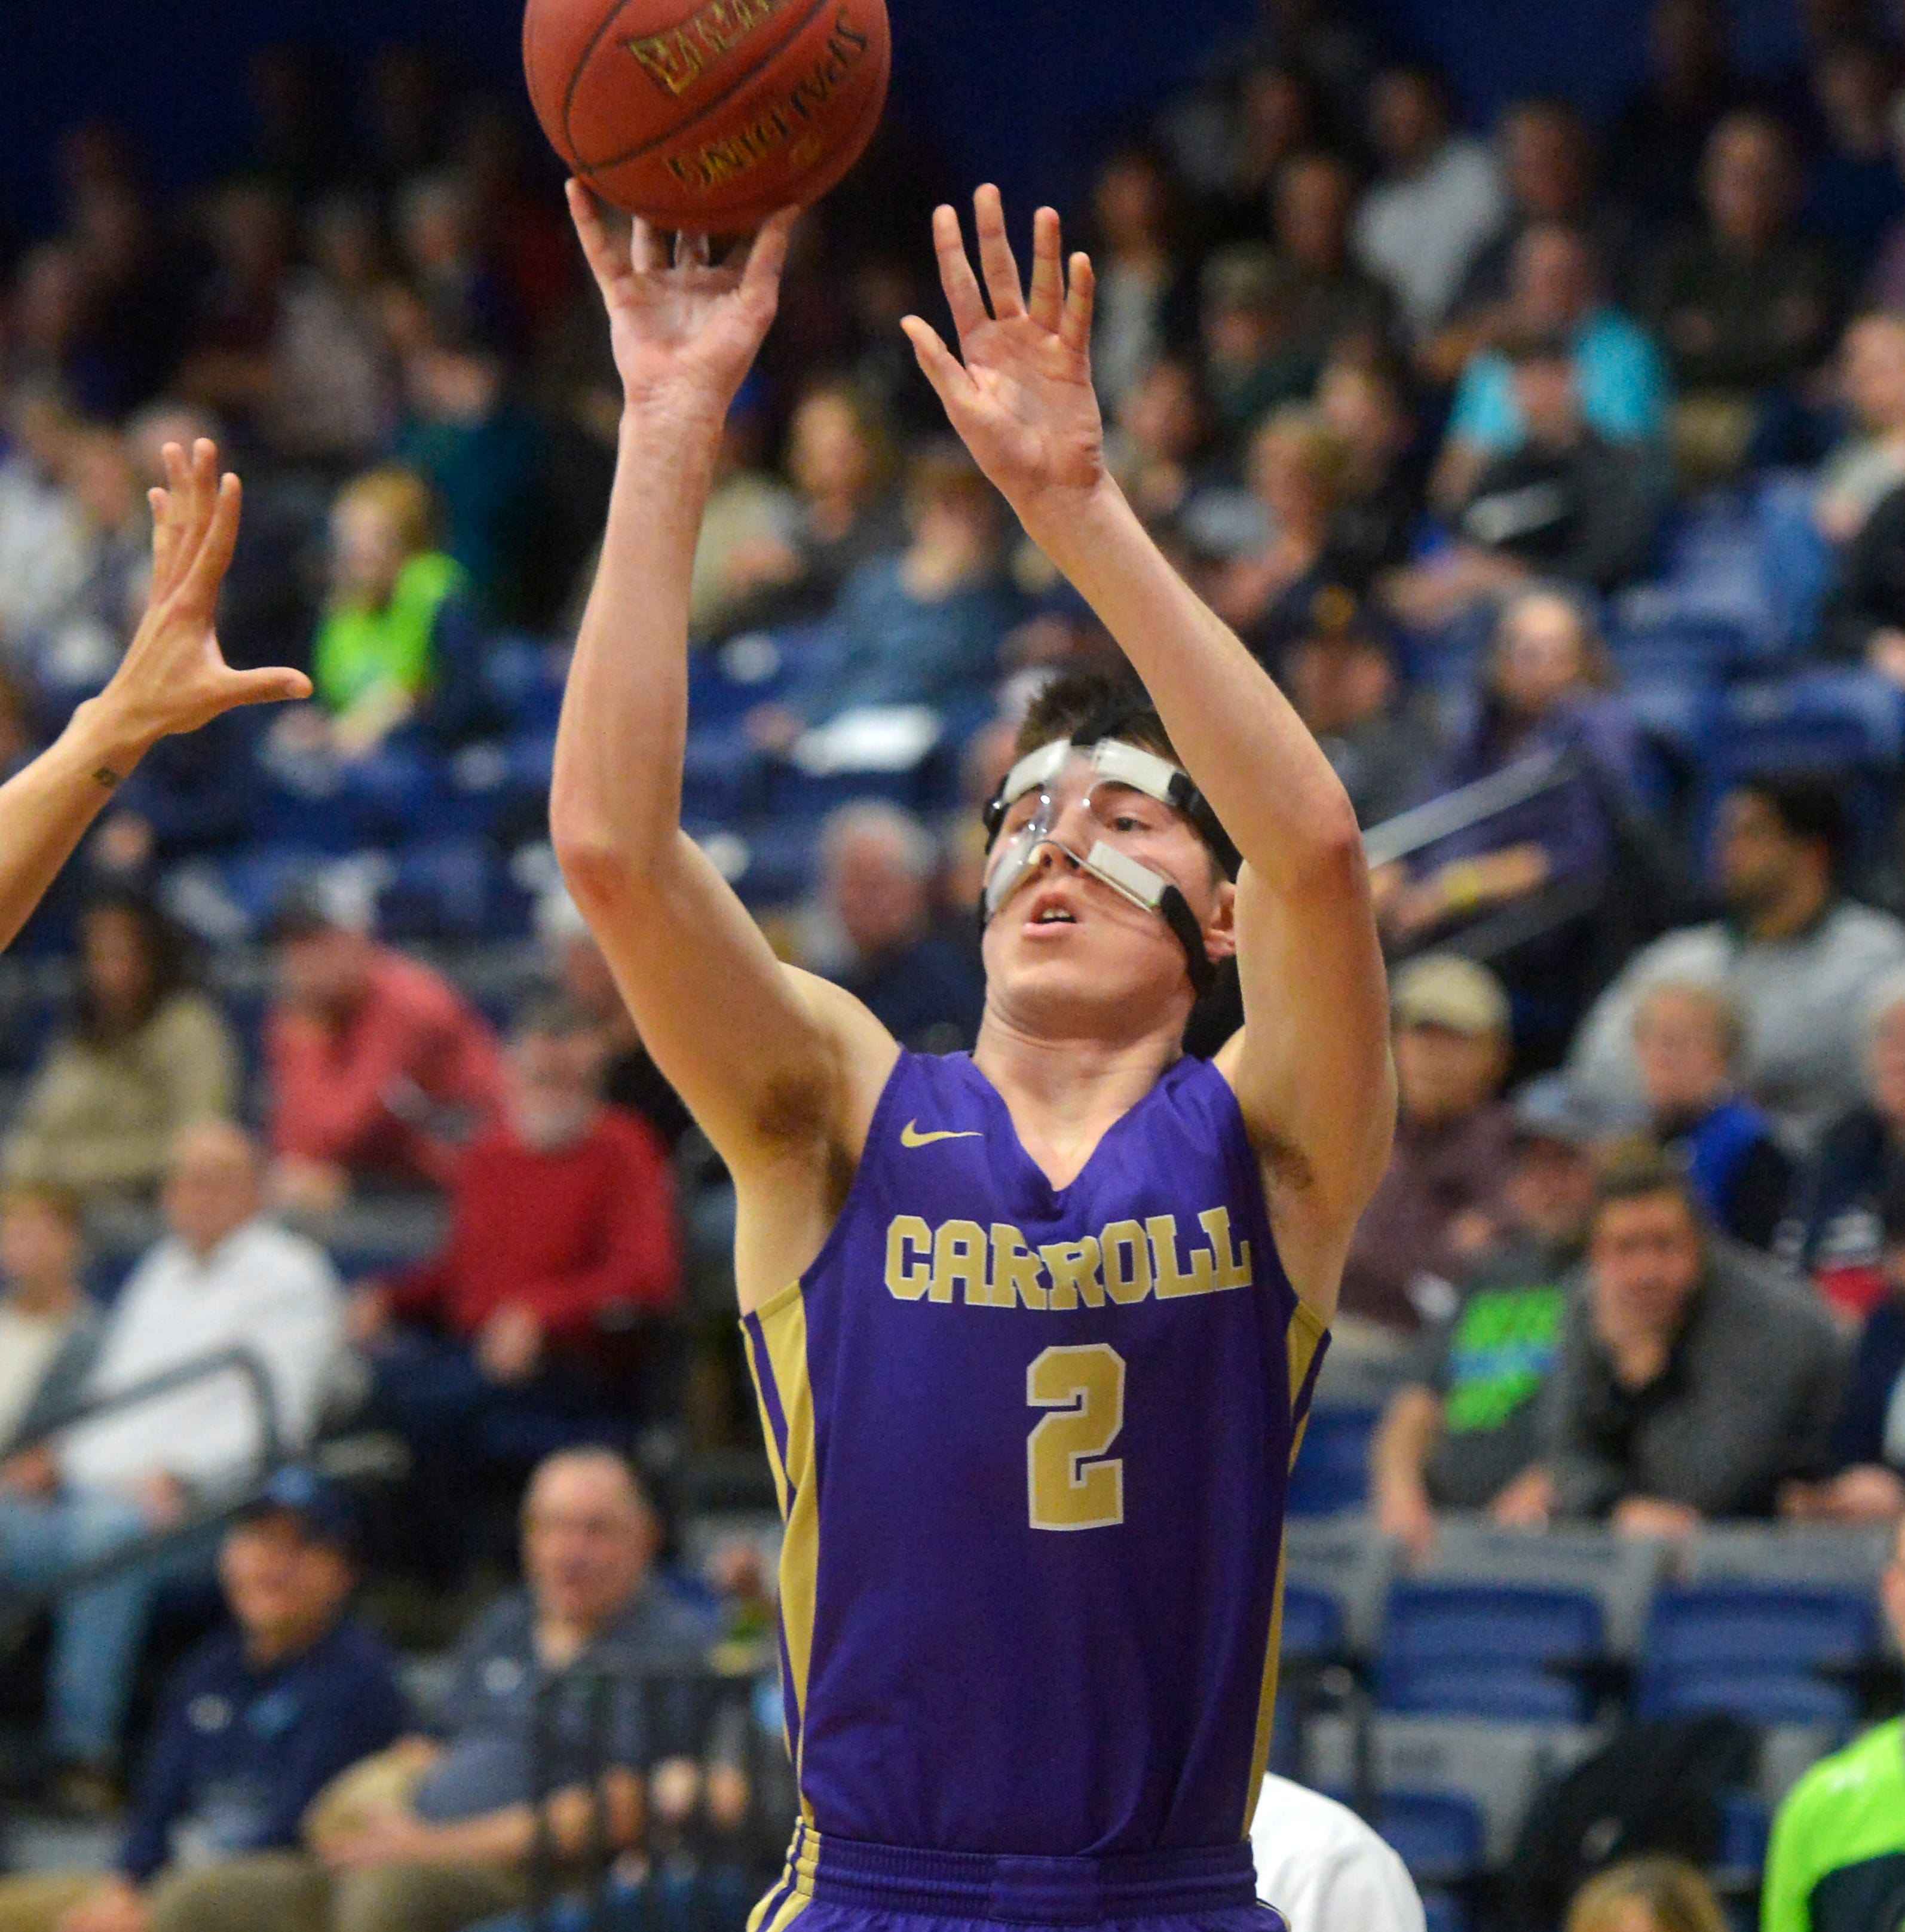 Carroll men fall to Georgetown (Ky.) in NAIA national championship game